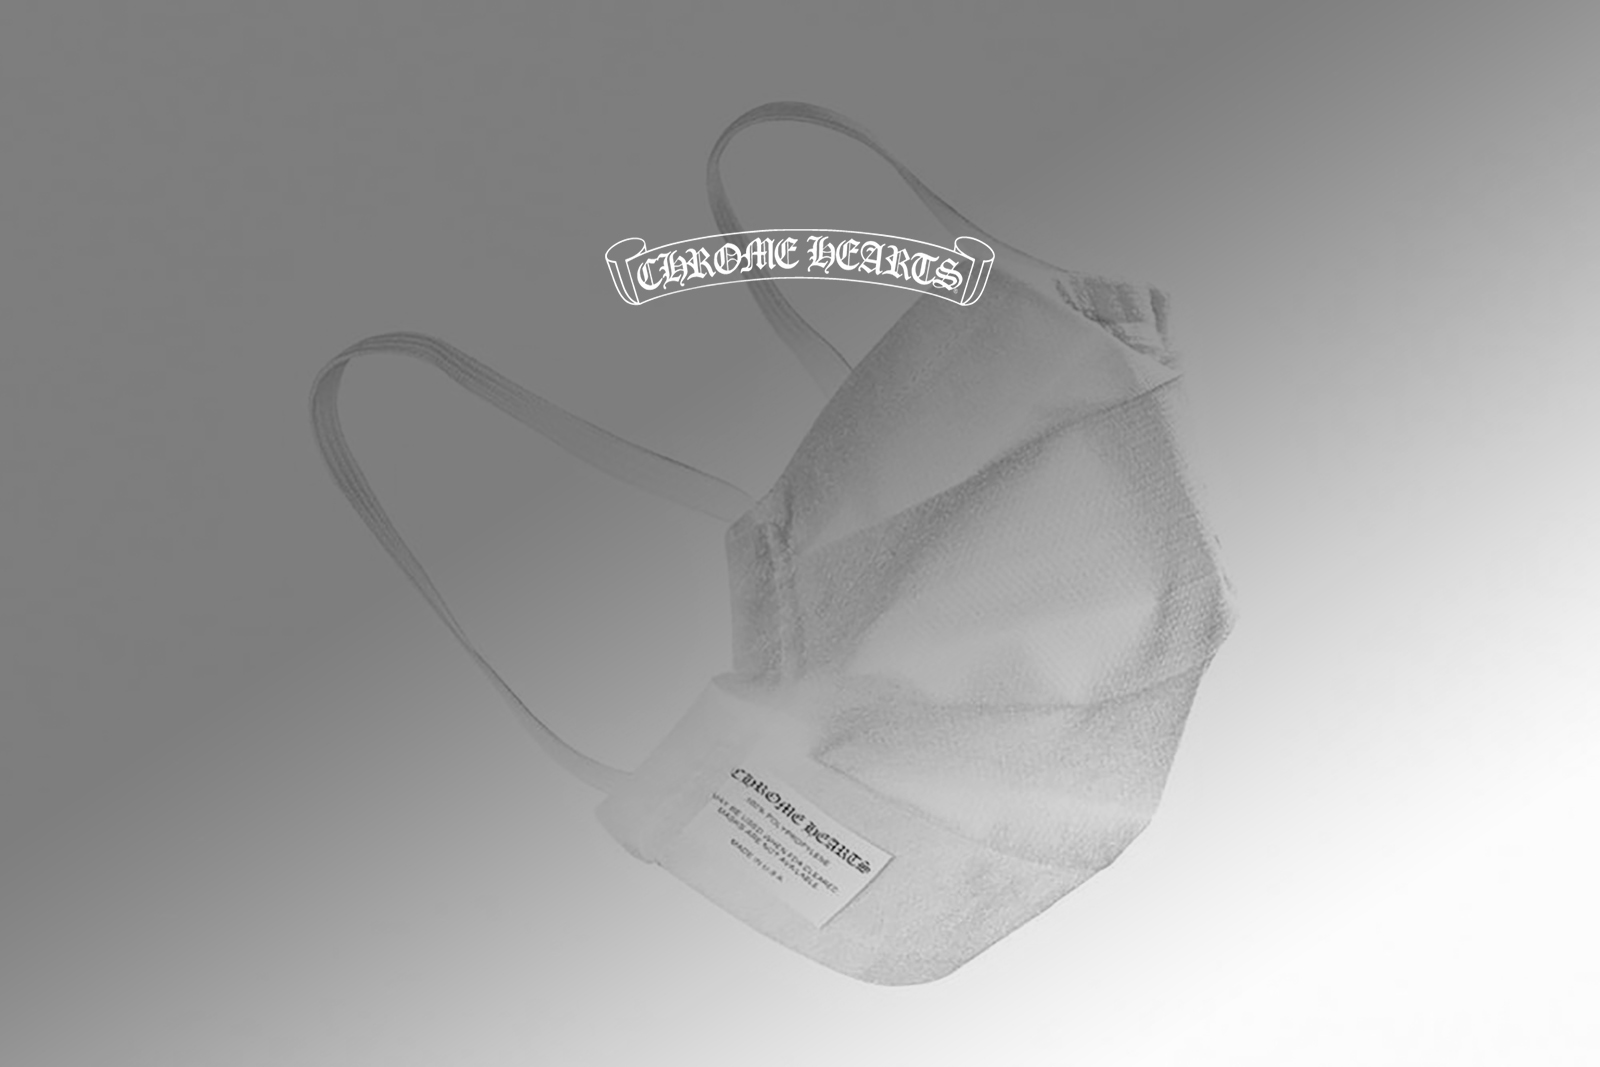 Chrome Hearts Produces Medical Masks